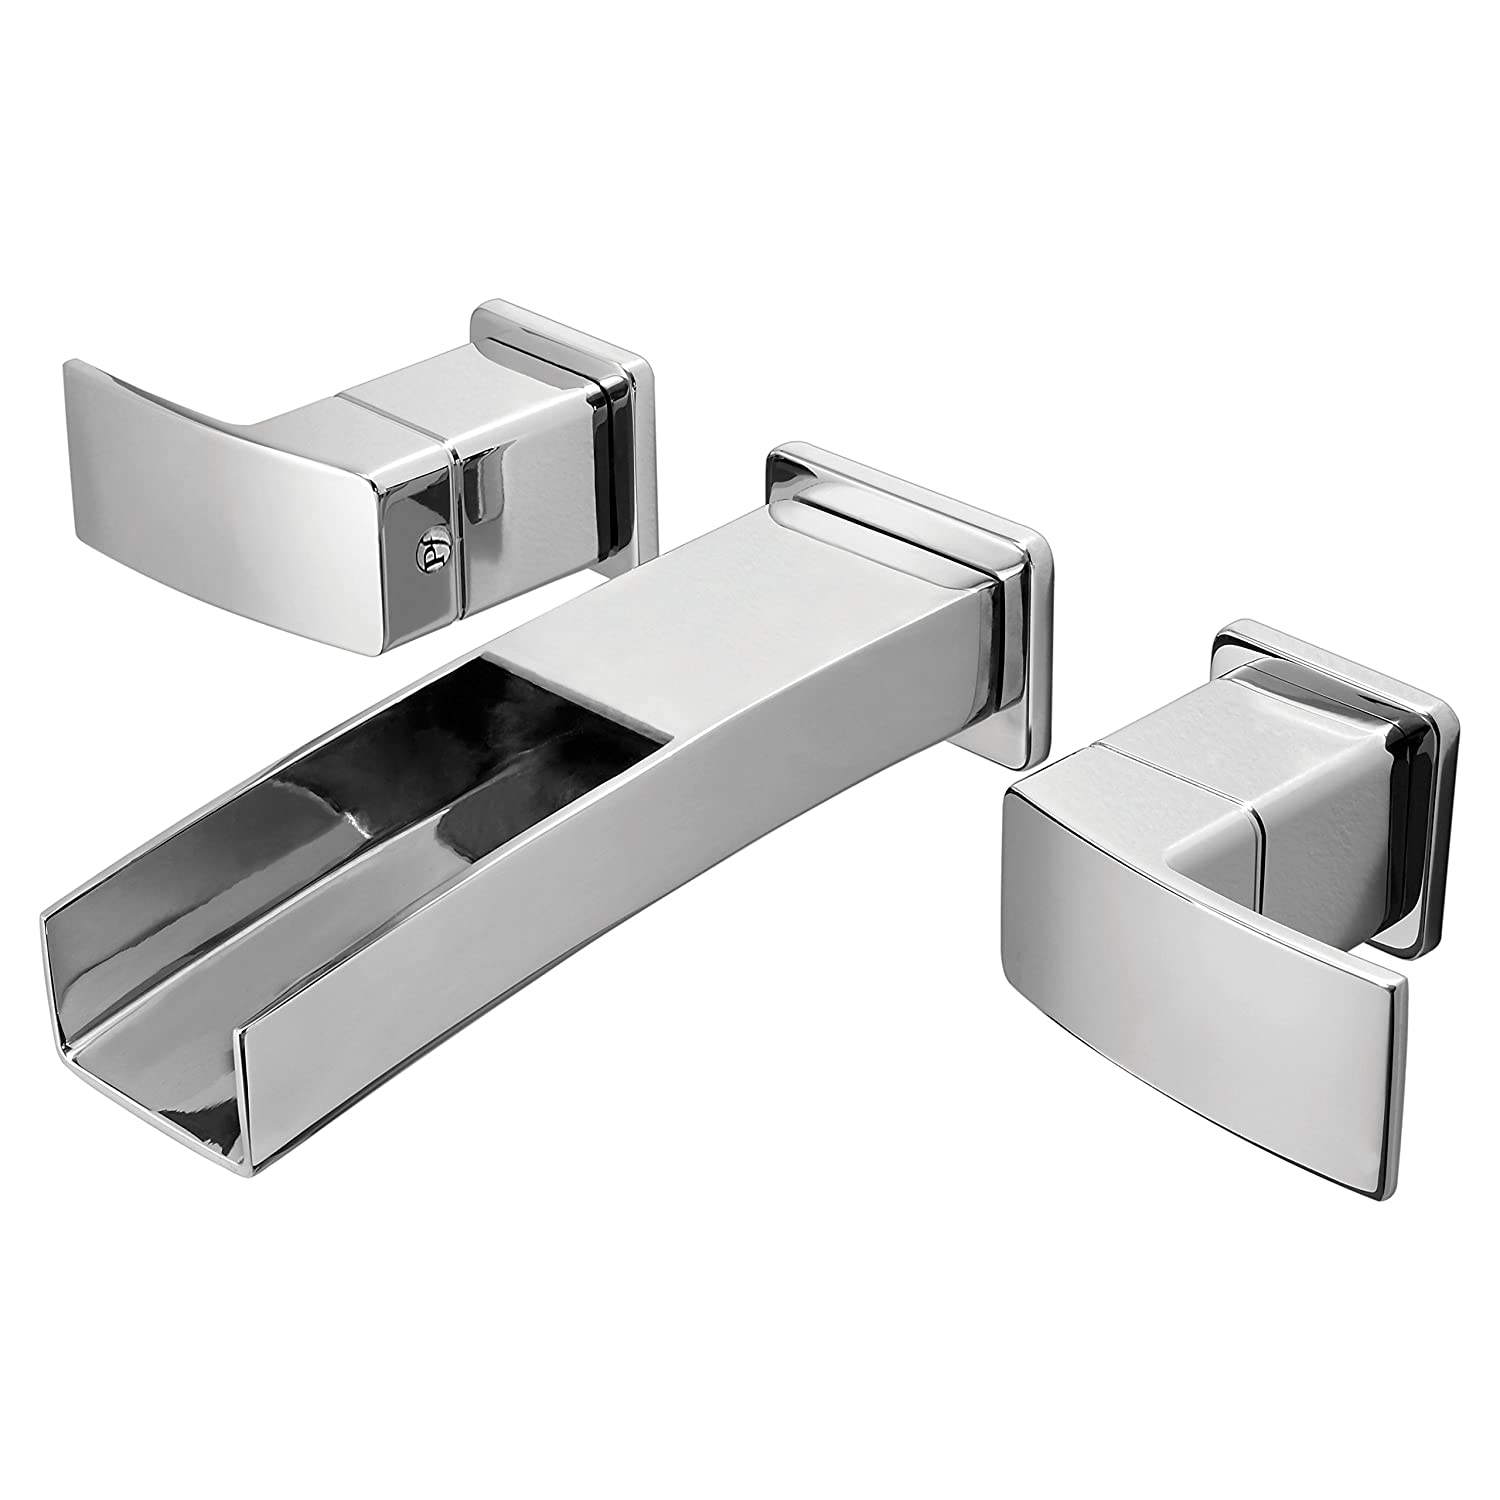 Waterfall wall mount bathroom faucet - Pfister Gt49df1c Kenzo 2 Handle Waterfall Wall Mount Waterfall Bathroom Faucet In Polished Chrome Touch On Bathroom Sink Faucets Amazon Com